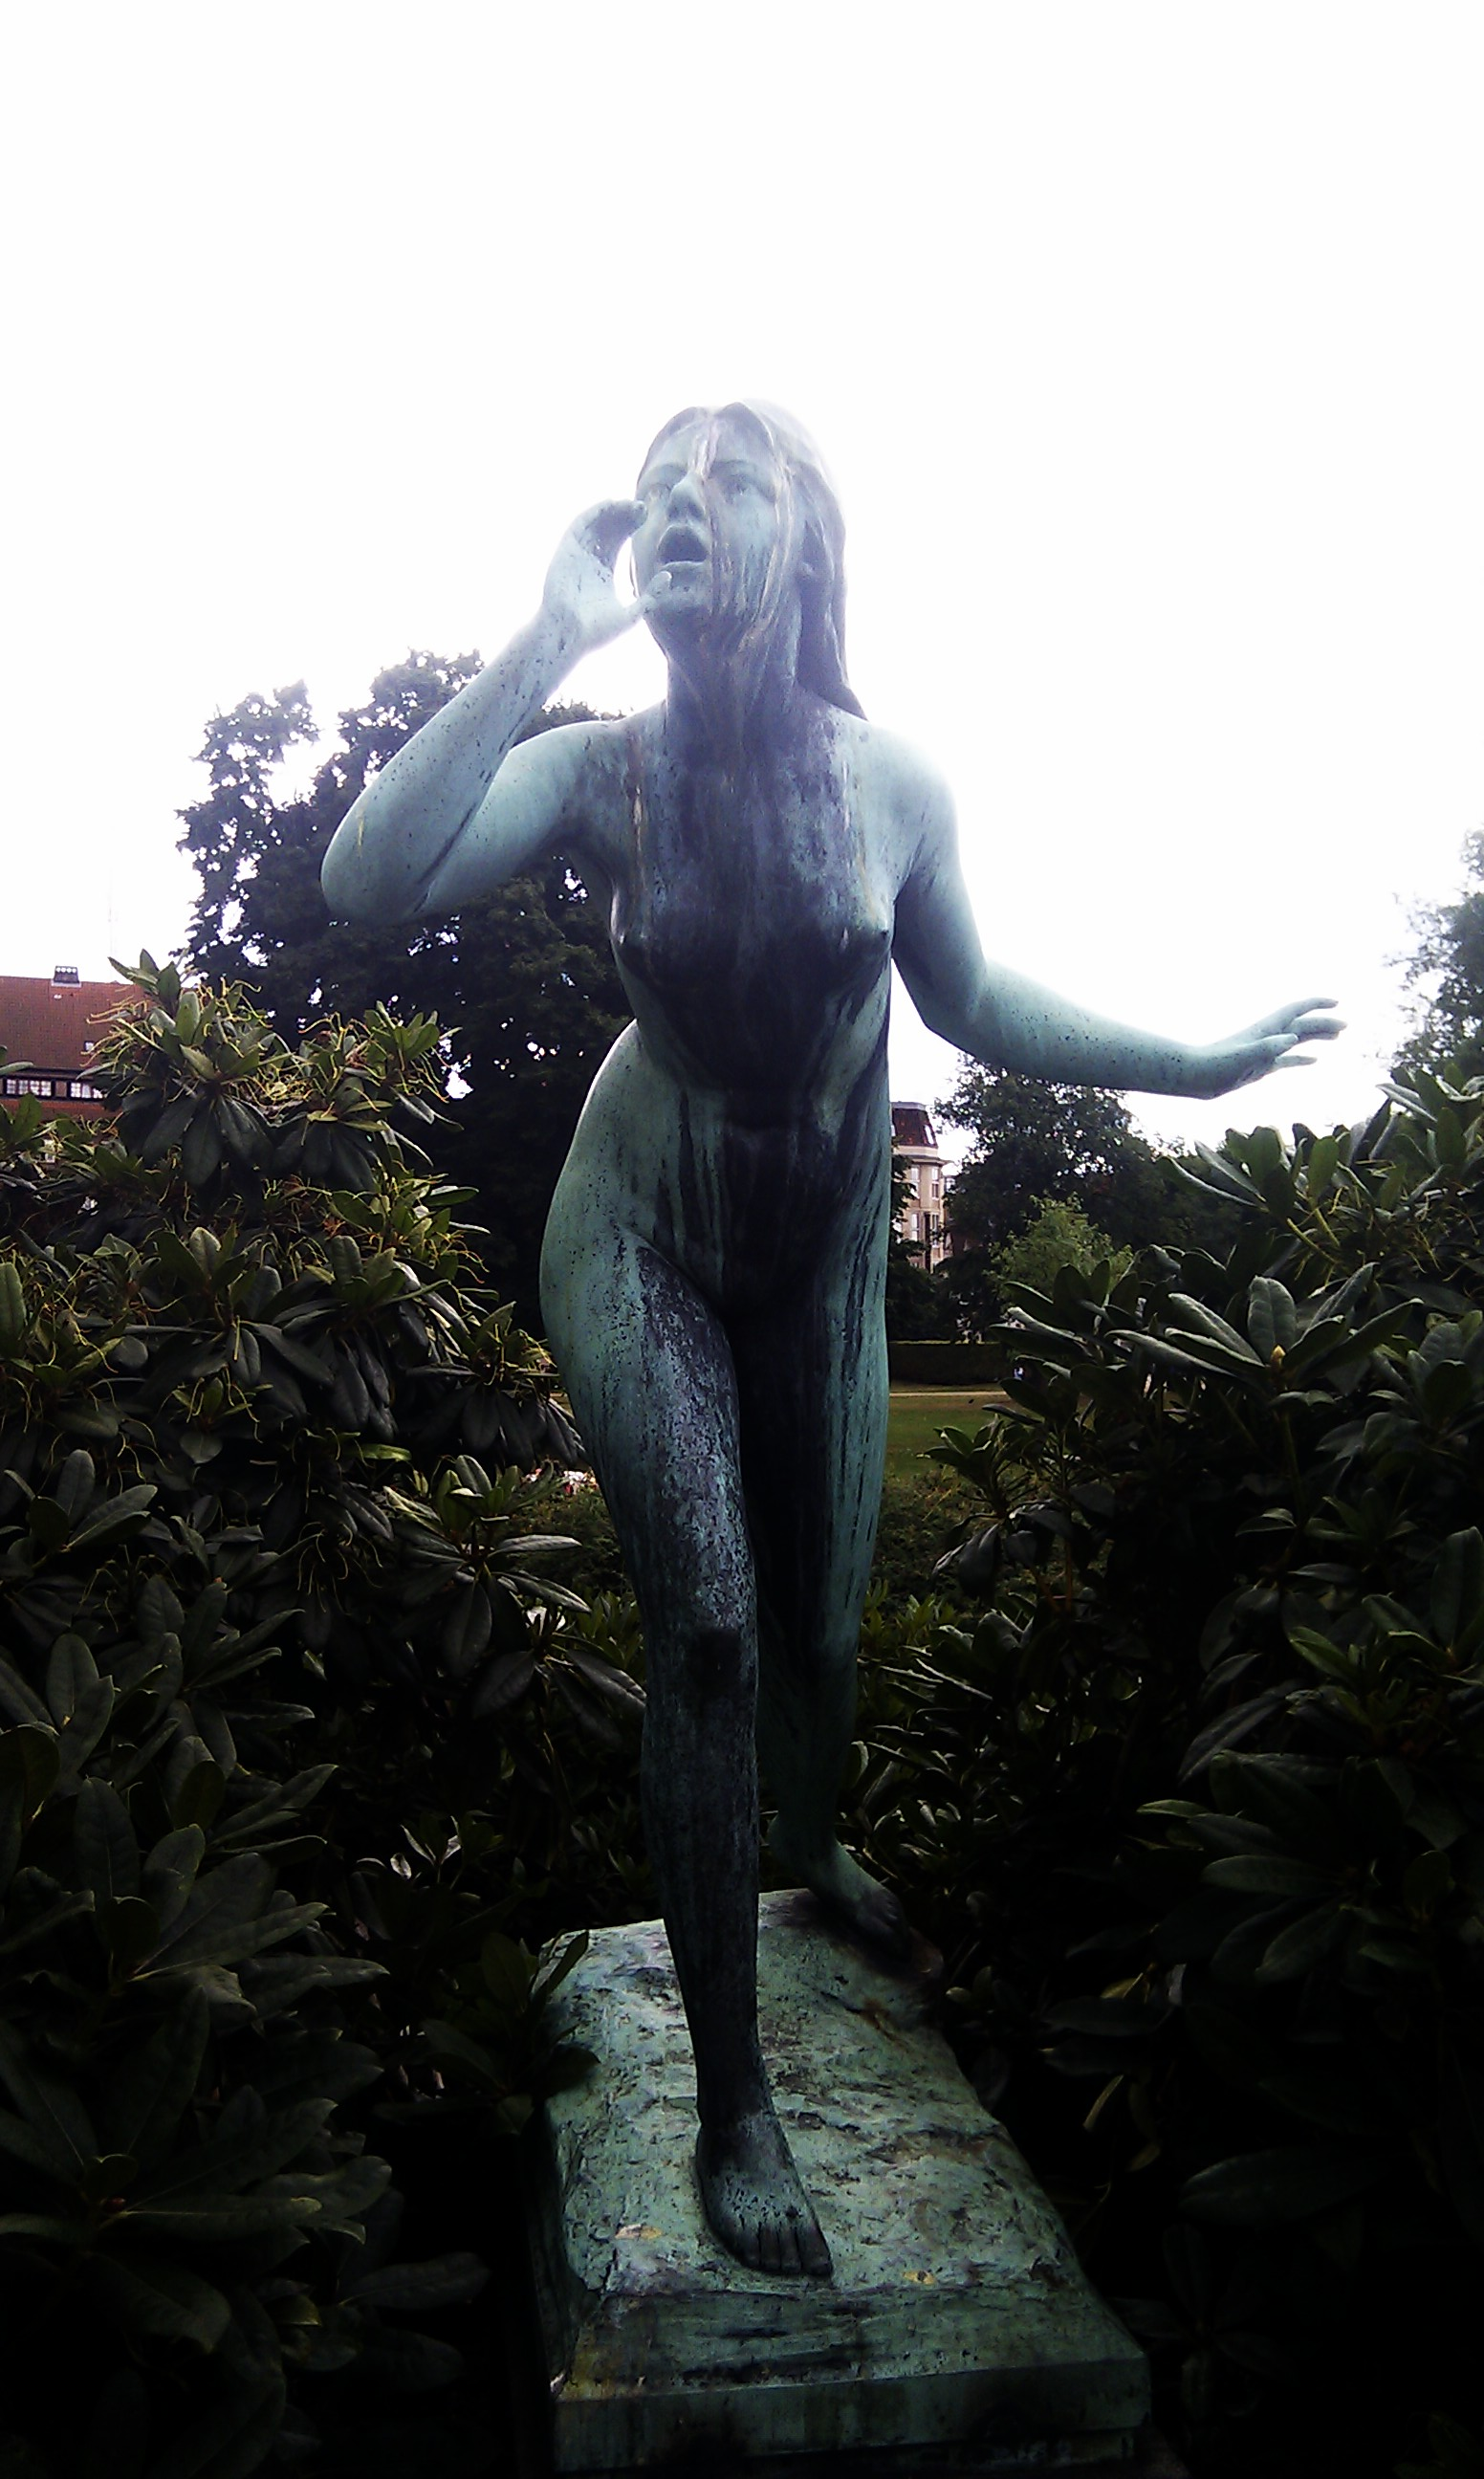 Statue at Kongens Have